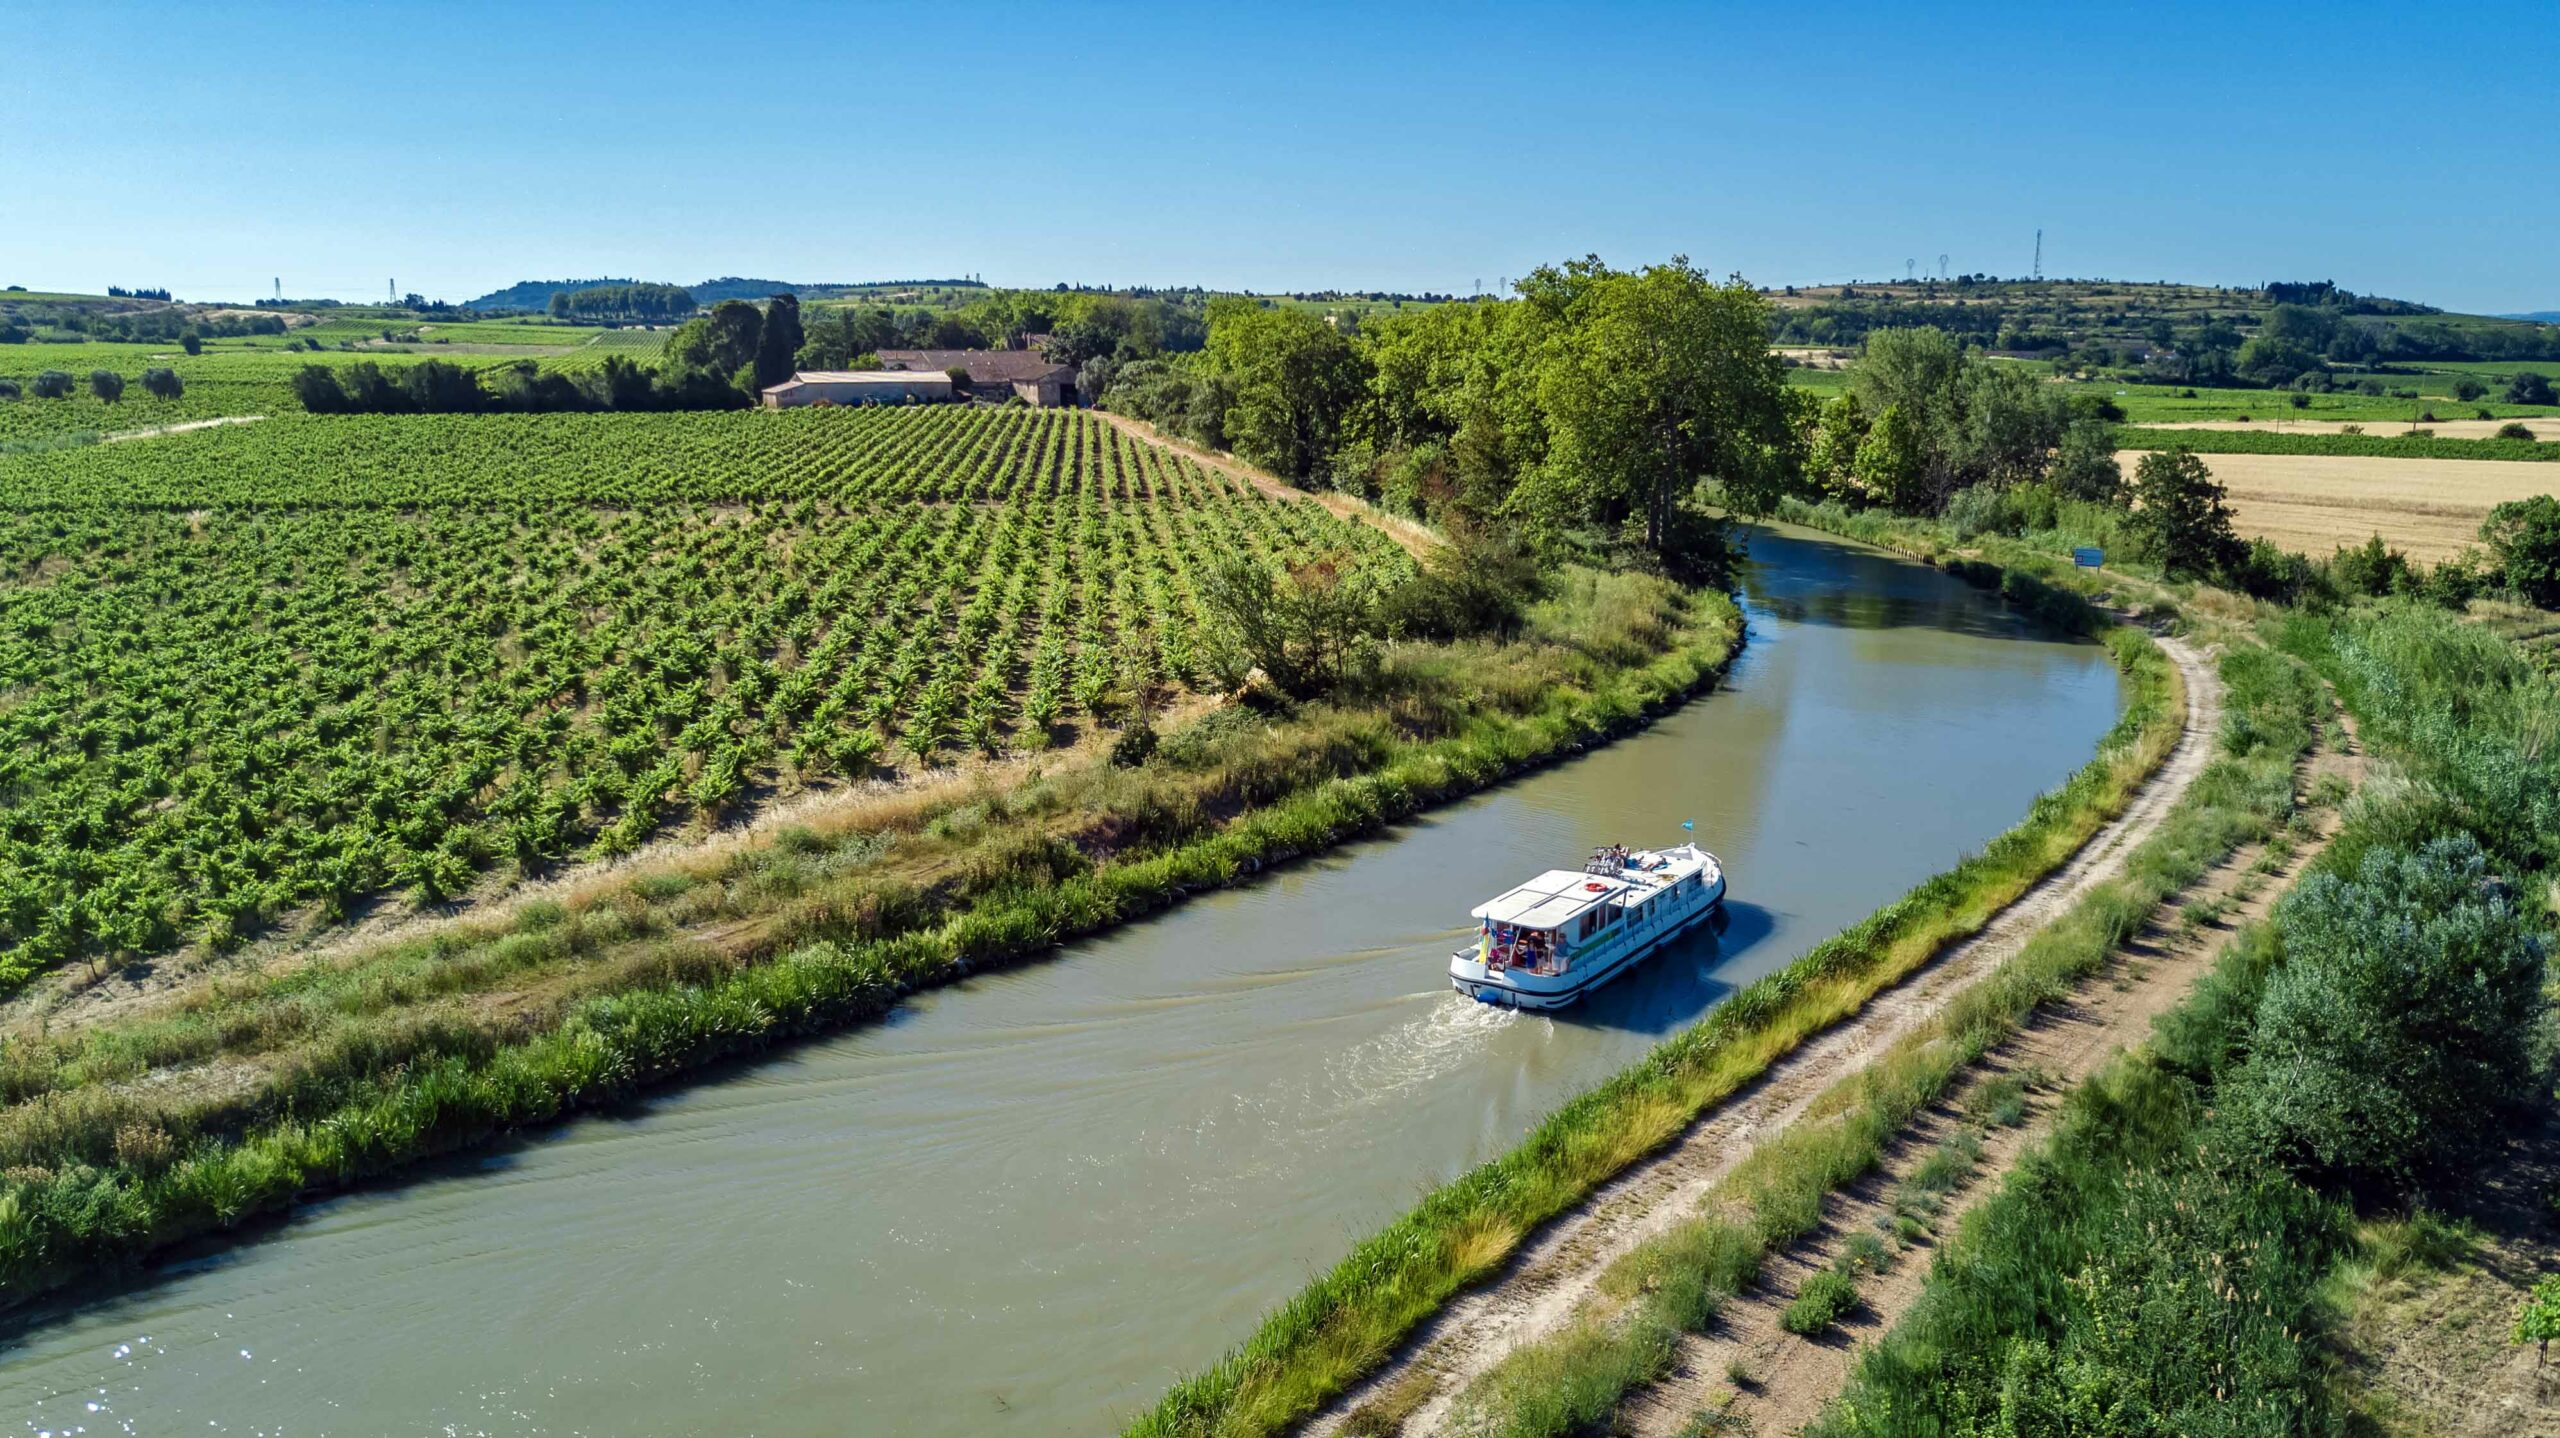 France's Canal du Midi: A Reinvented Wonder Of The Engineering World